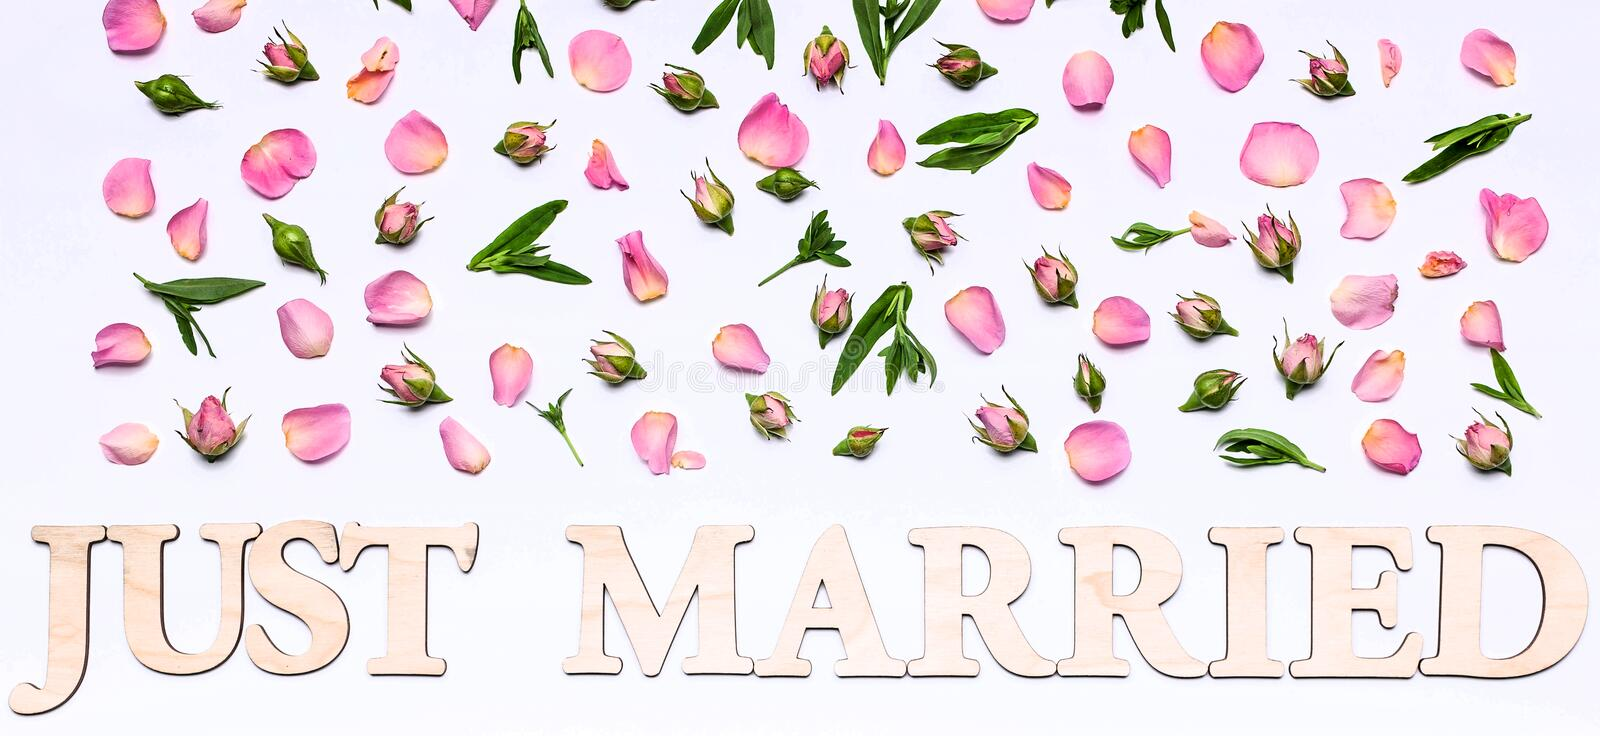 Banner. Floral wedding pattern on a white background. Petals and buds of roses. Blank greeting card or wedding invitation. Word:. Just married royalty free stock photo